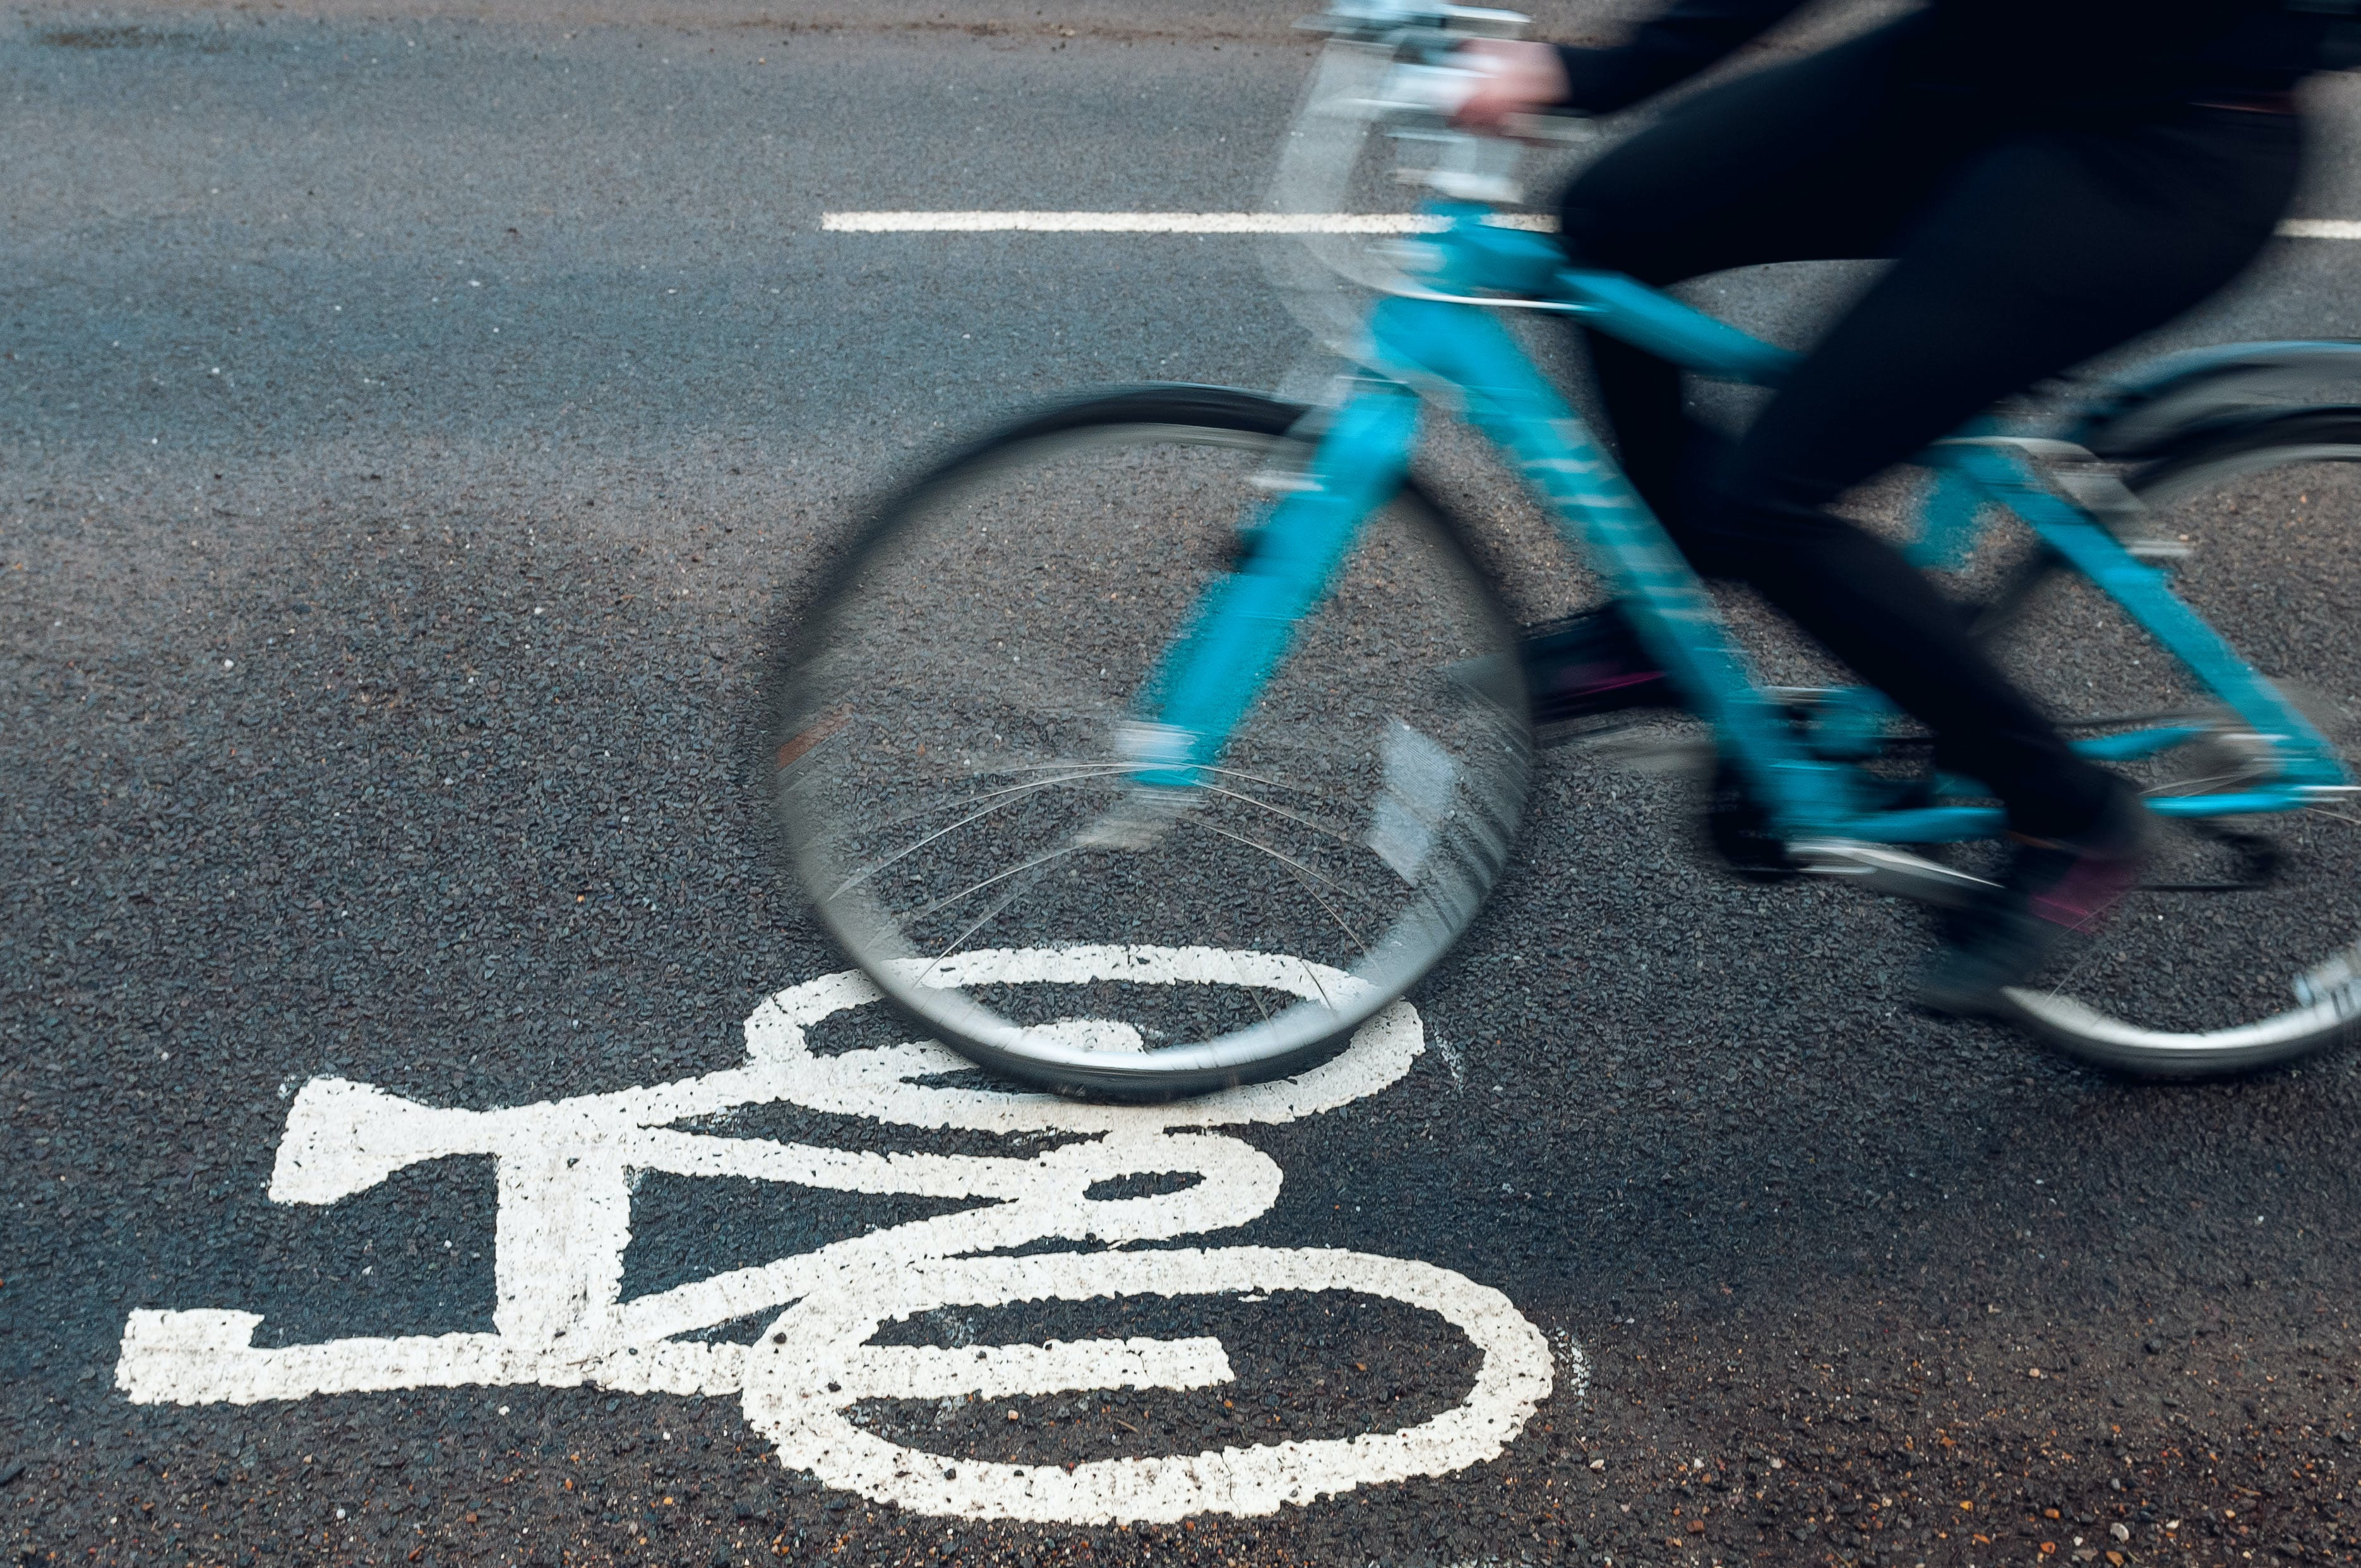 Someone riding a bike in a bike lane, with just the legs showing